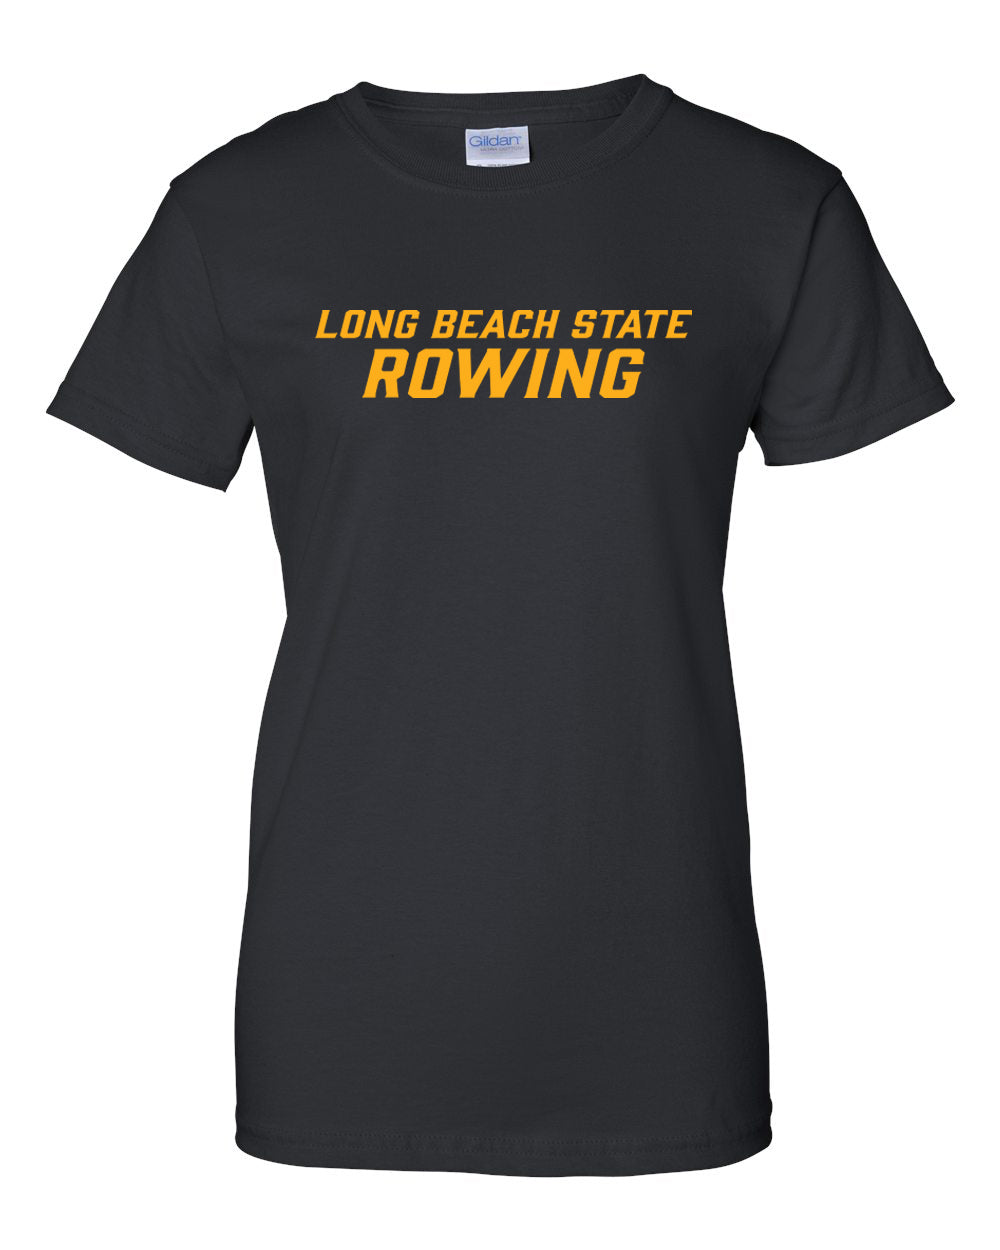 100% Cotton Long Beach Rowing Women's Team Spirit T-Shirt